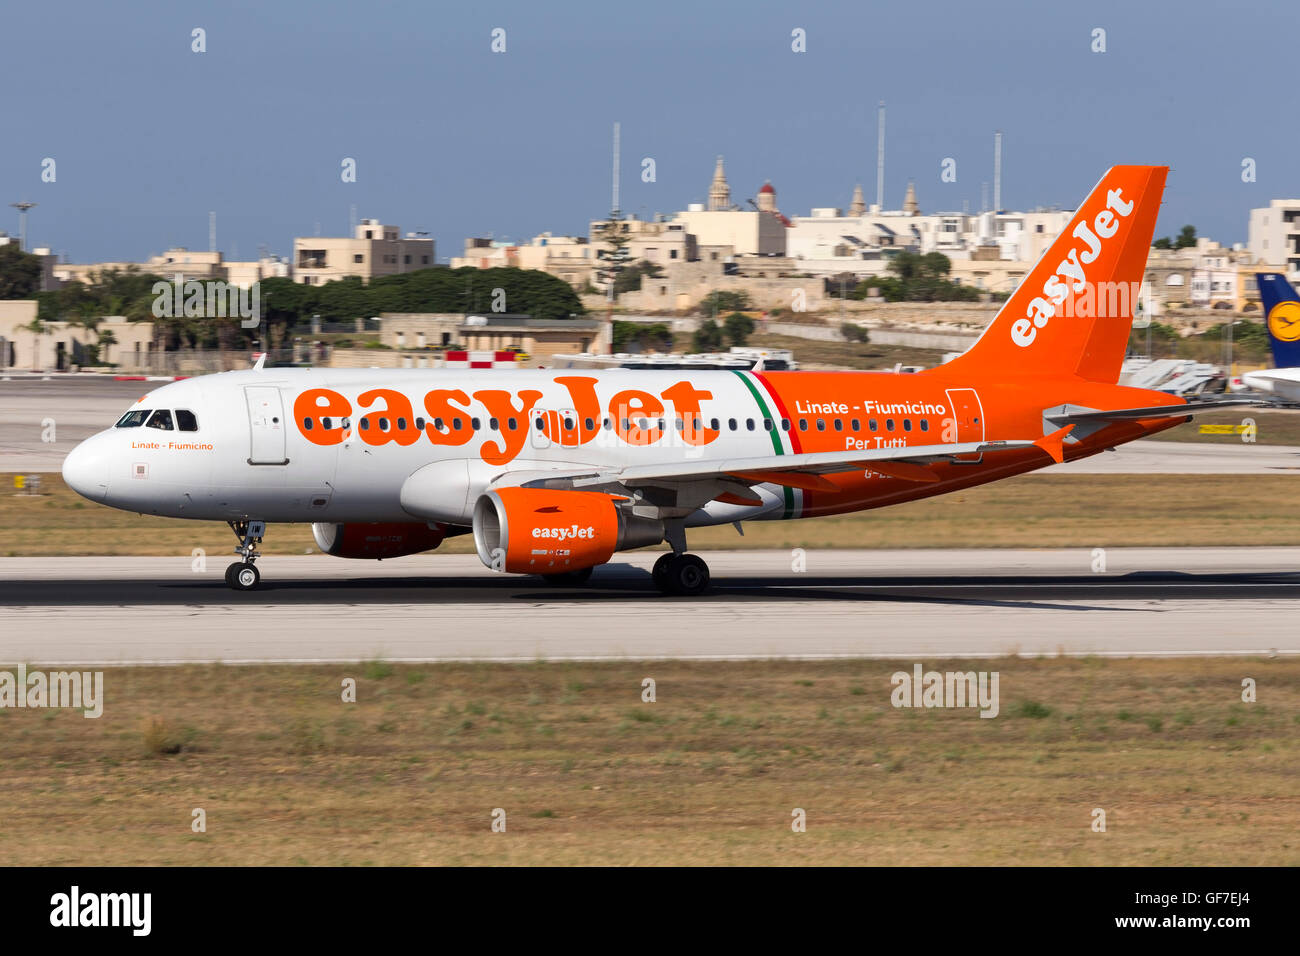 EasyJet Airline Airbus A319-111 carrying the special livery 'Linate - Fiumicino Per Tutti' takes off from - Stock Image